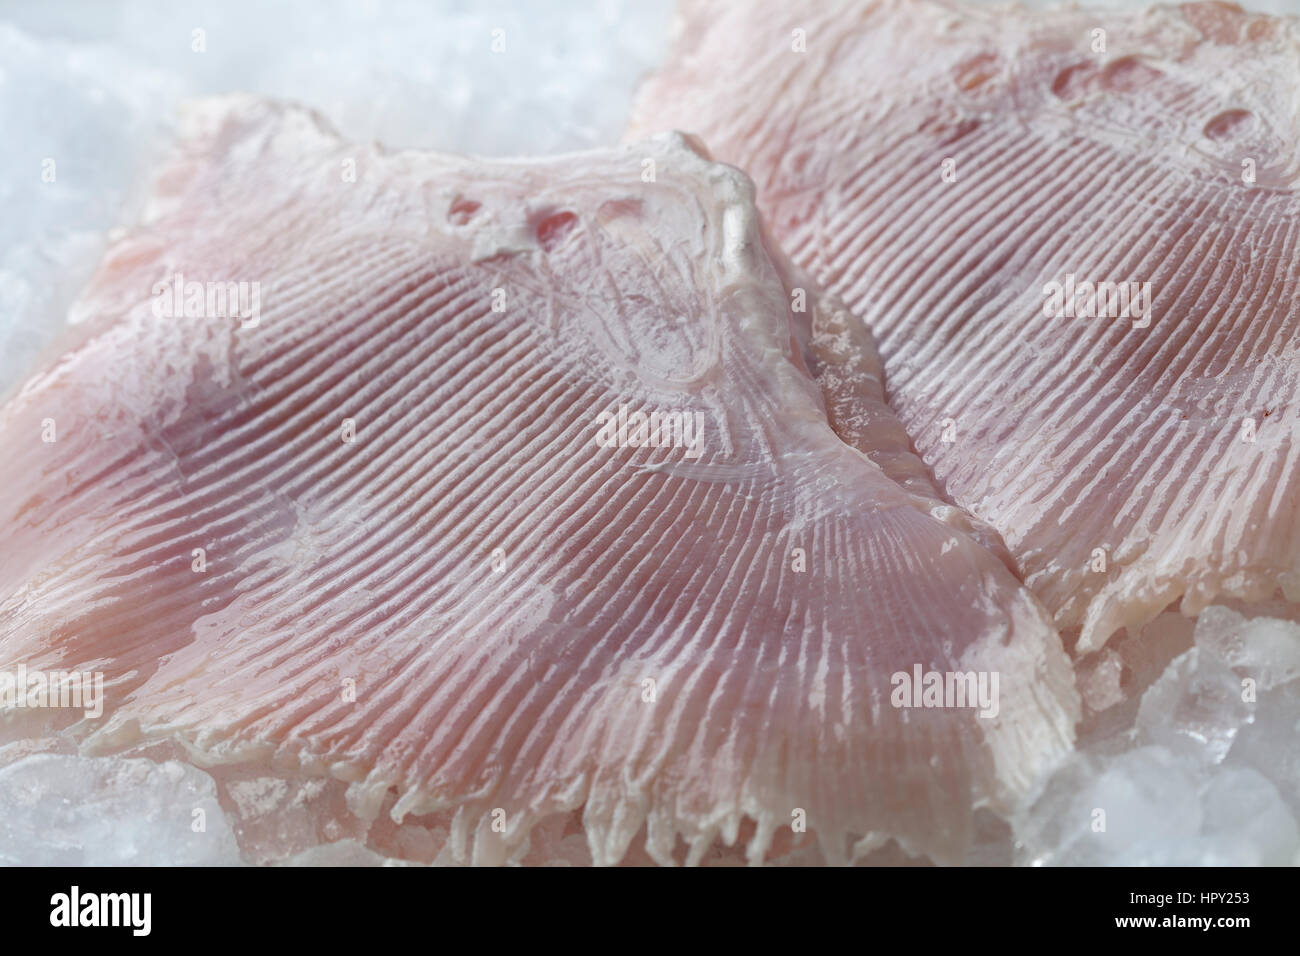 Fresh raw skate fish wings on ice close up, - Stock Image